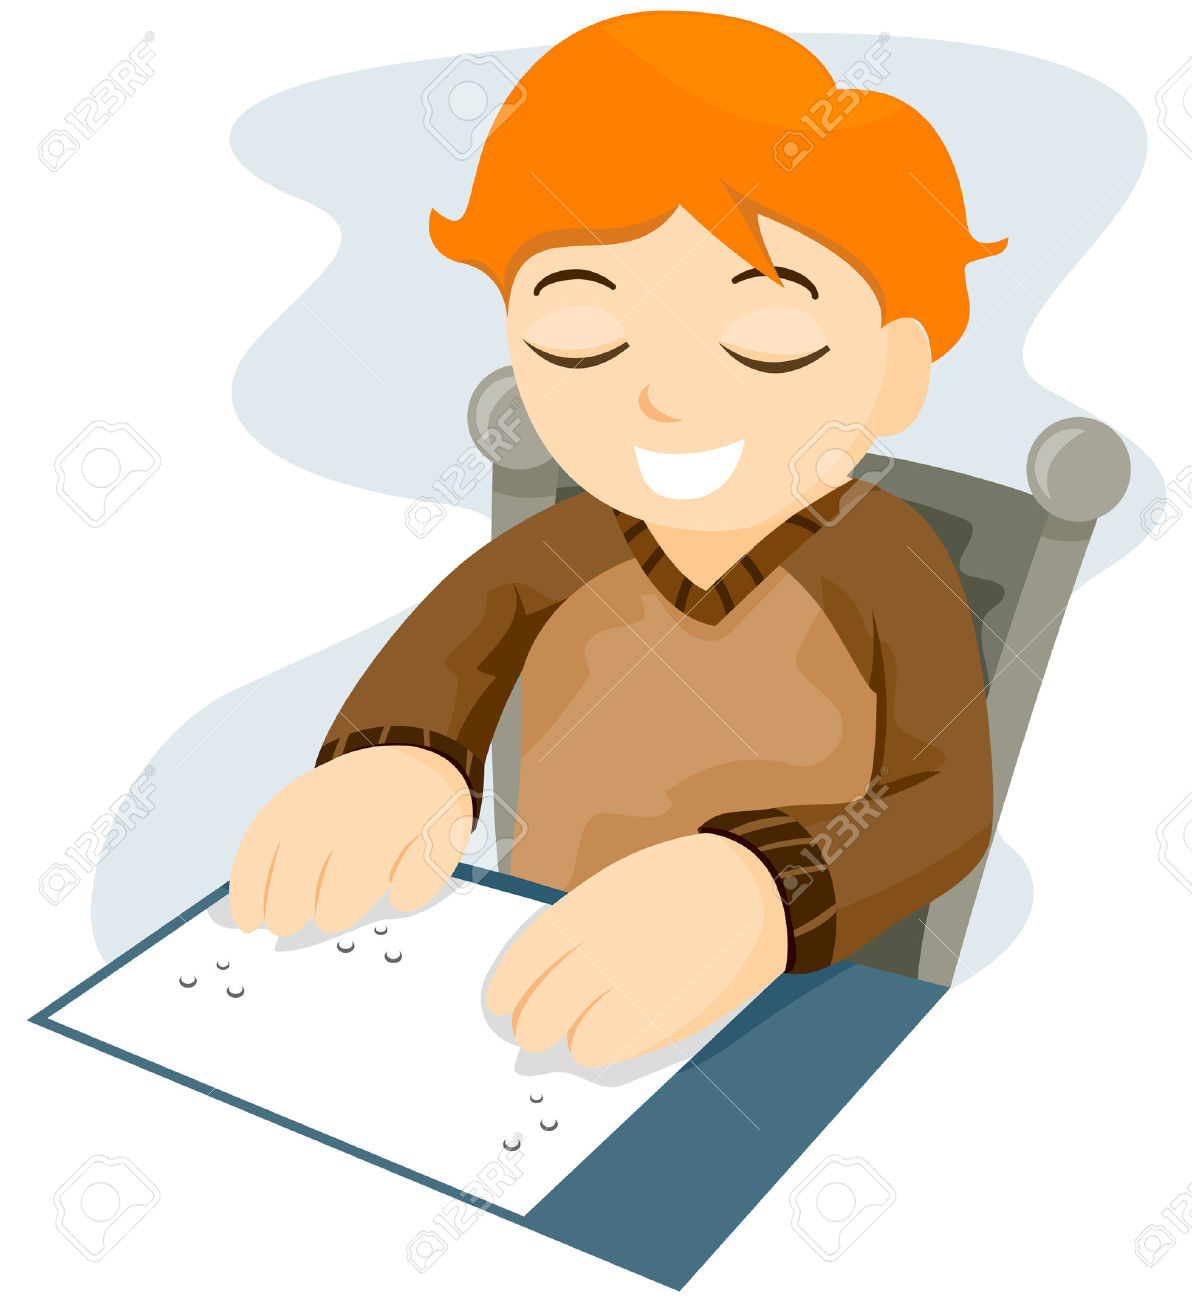 Braille Reading With Clipping Path Royalty Free Cliparts, Vectors.